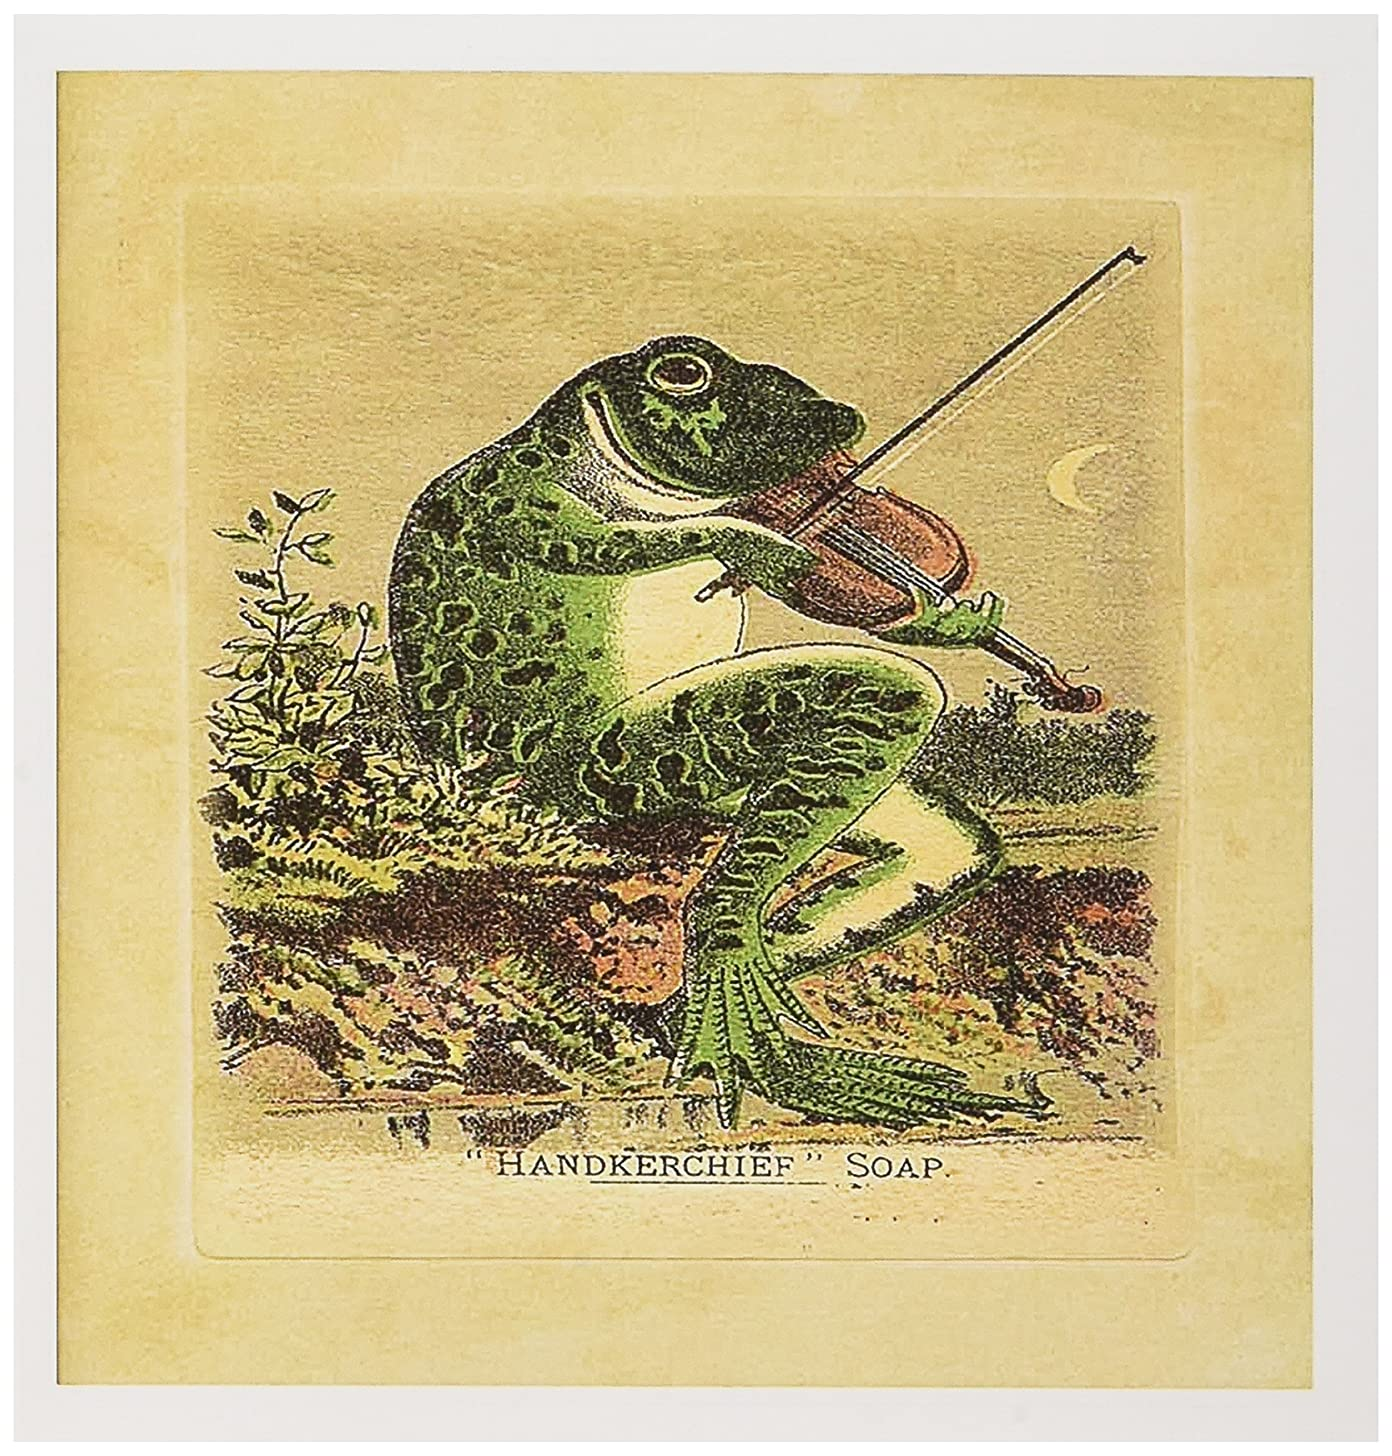 3dRose Print of Frog Plays Violin on Soap Ad Greeting Cards, Set of 6 (gc_194991_1)